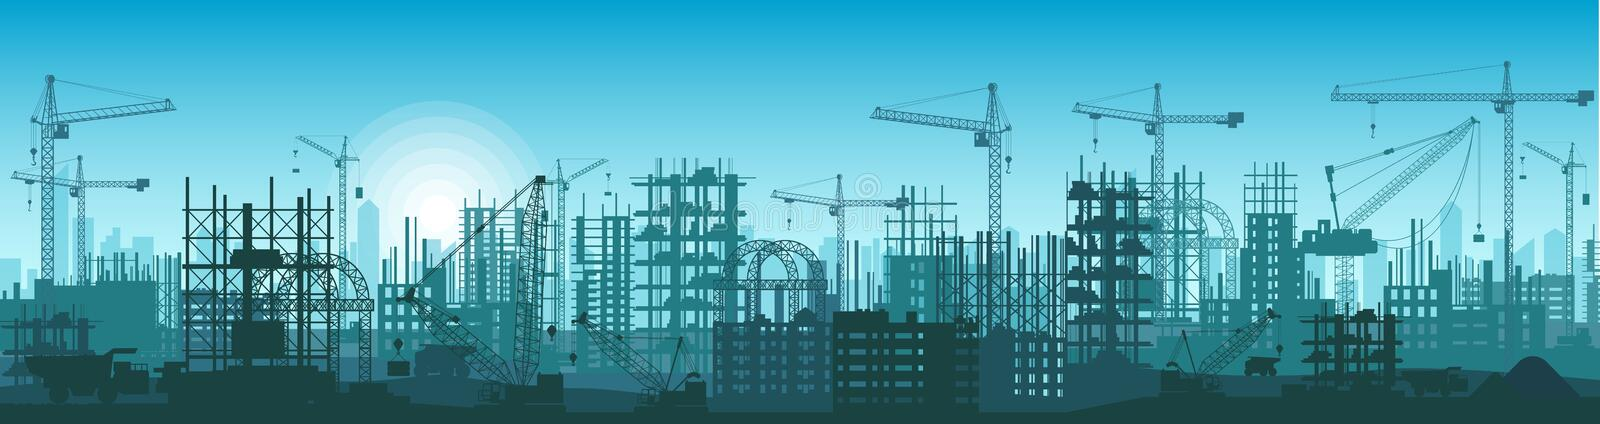 Wide High detailed banner illustration silhouette of buildings under construction in process. stock illustration